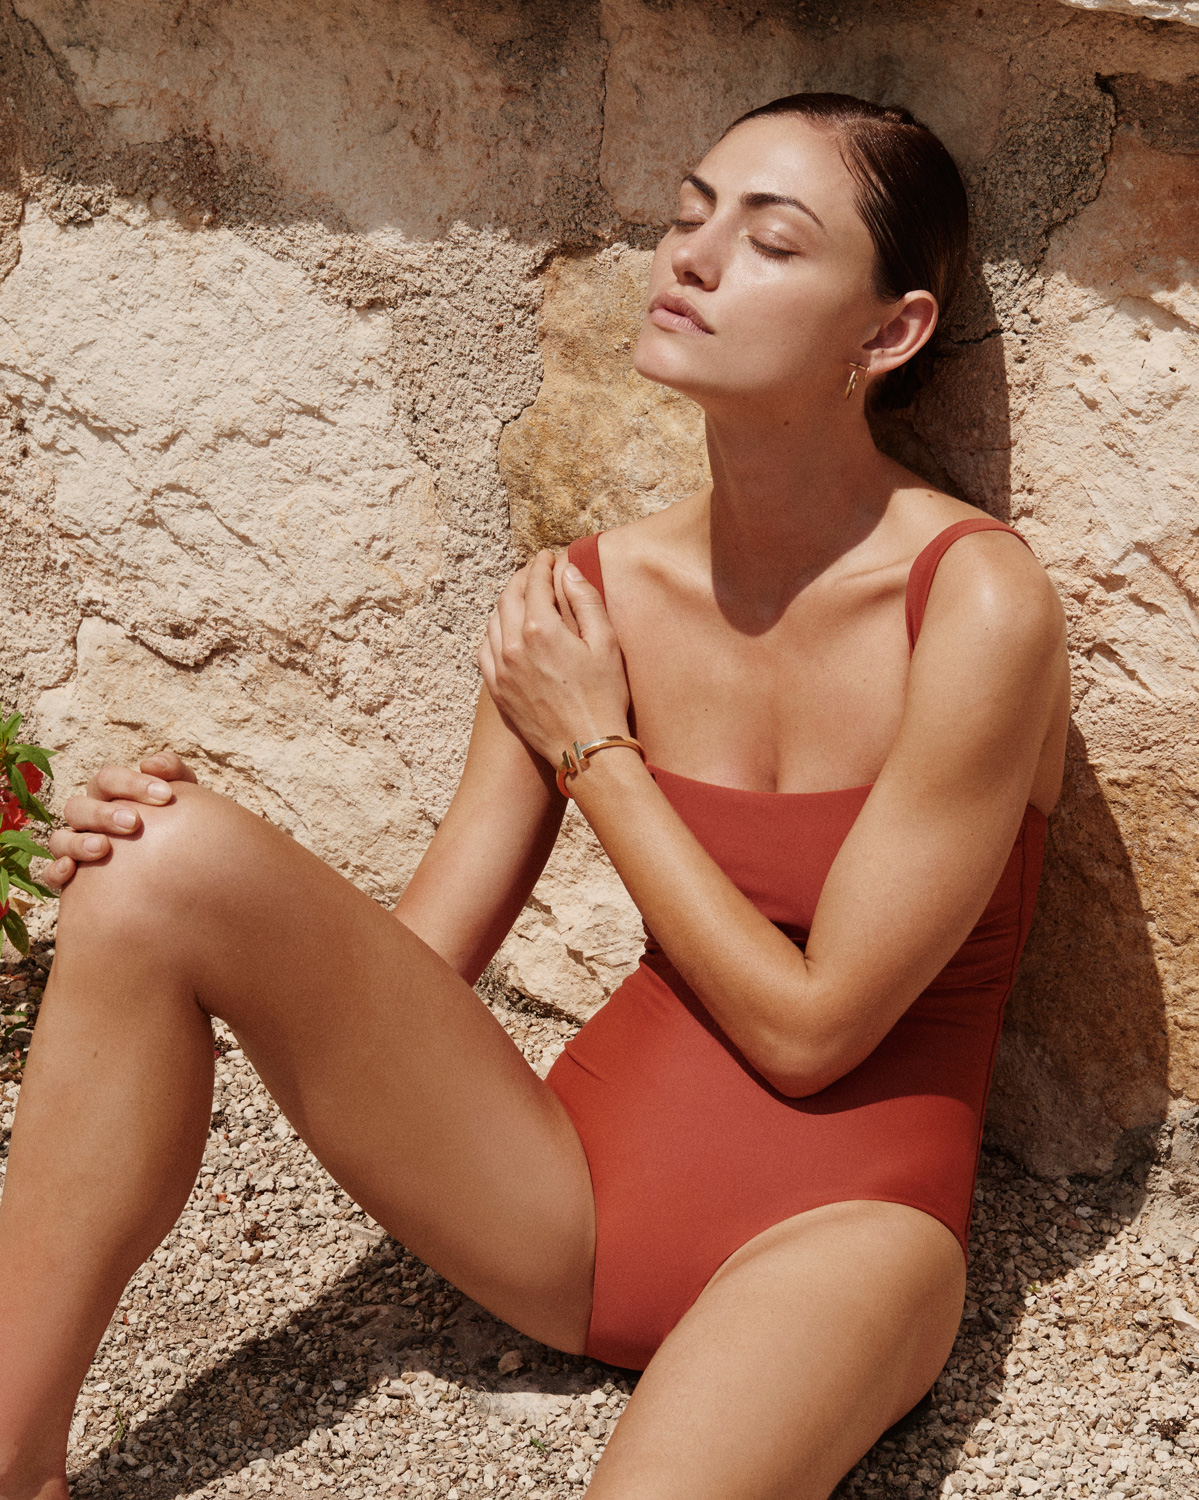 PHOEBE-TONKIN-BY-ALEXANDRA-NATAF-FOR-MATTEAU-SWIM-RESORT-2016-AD-CAMPAIGN-7